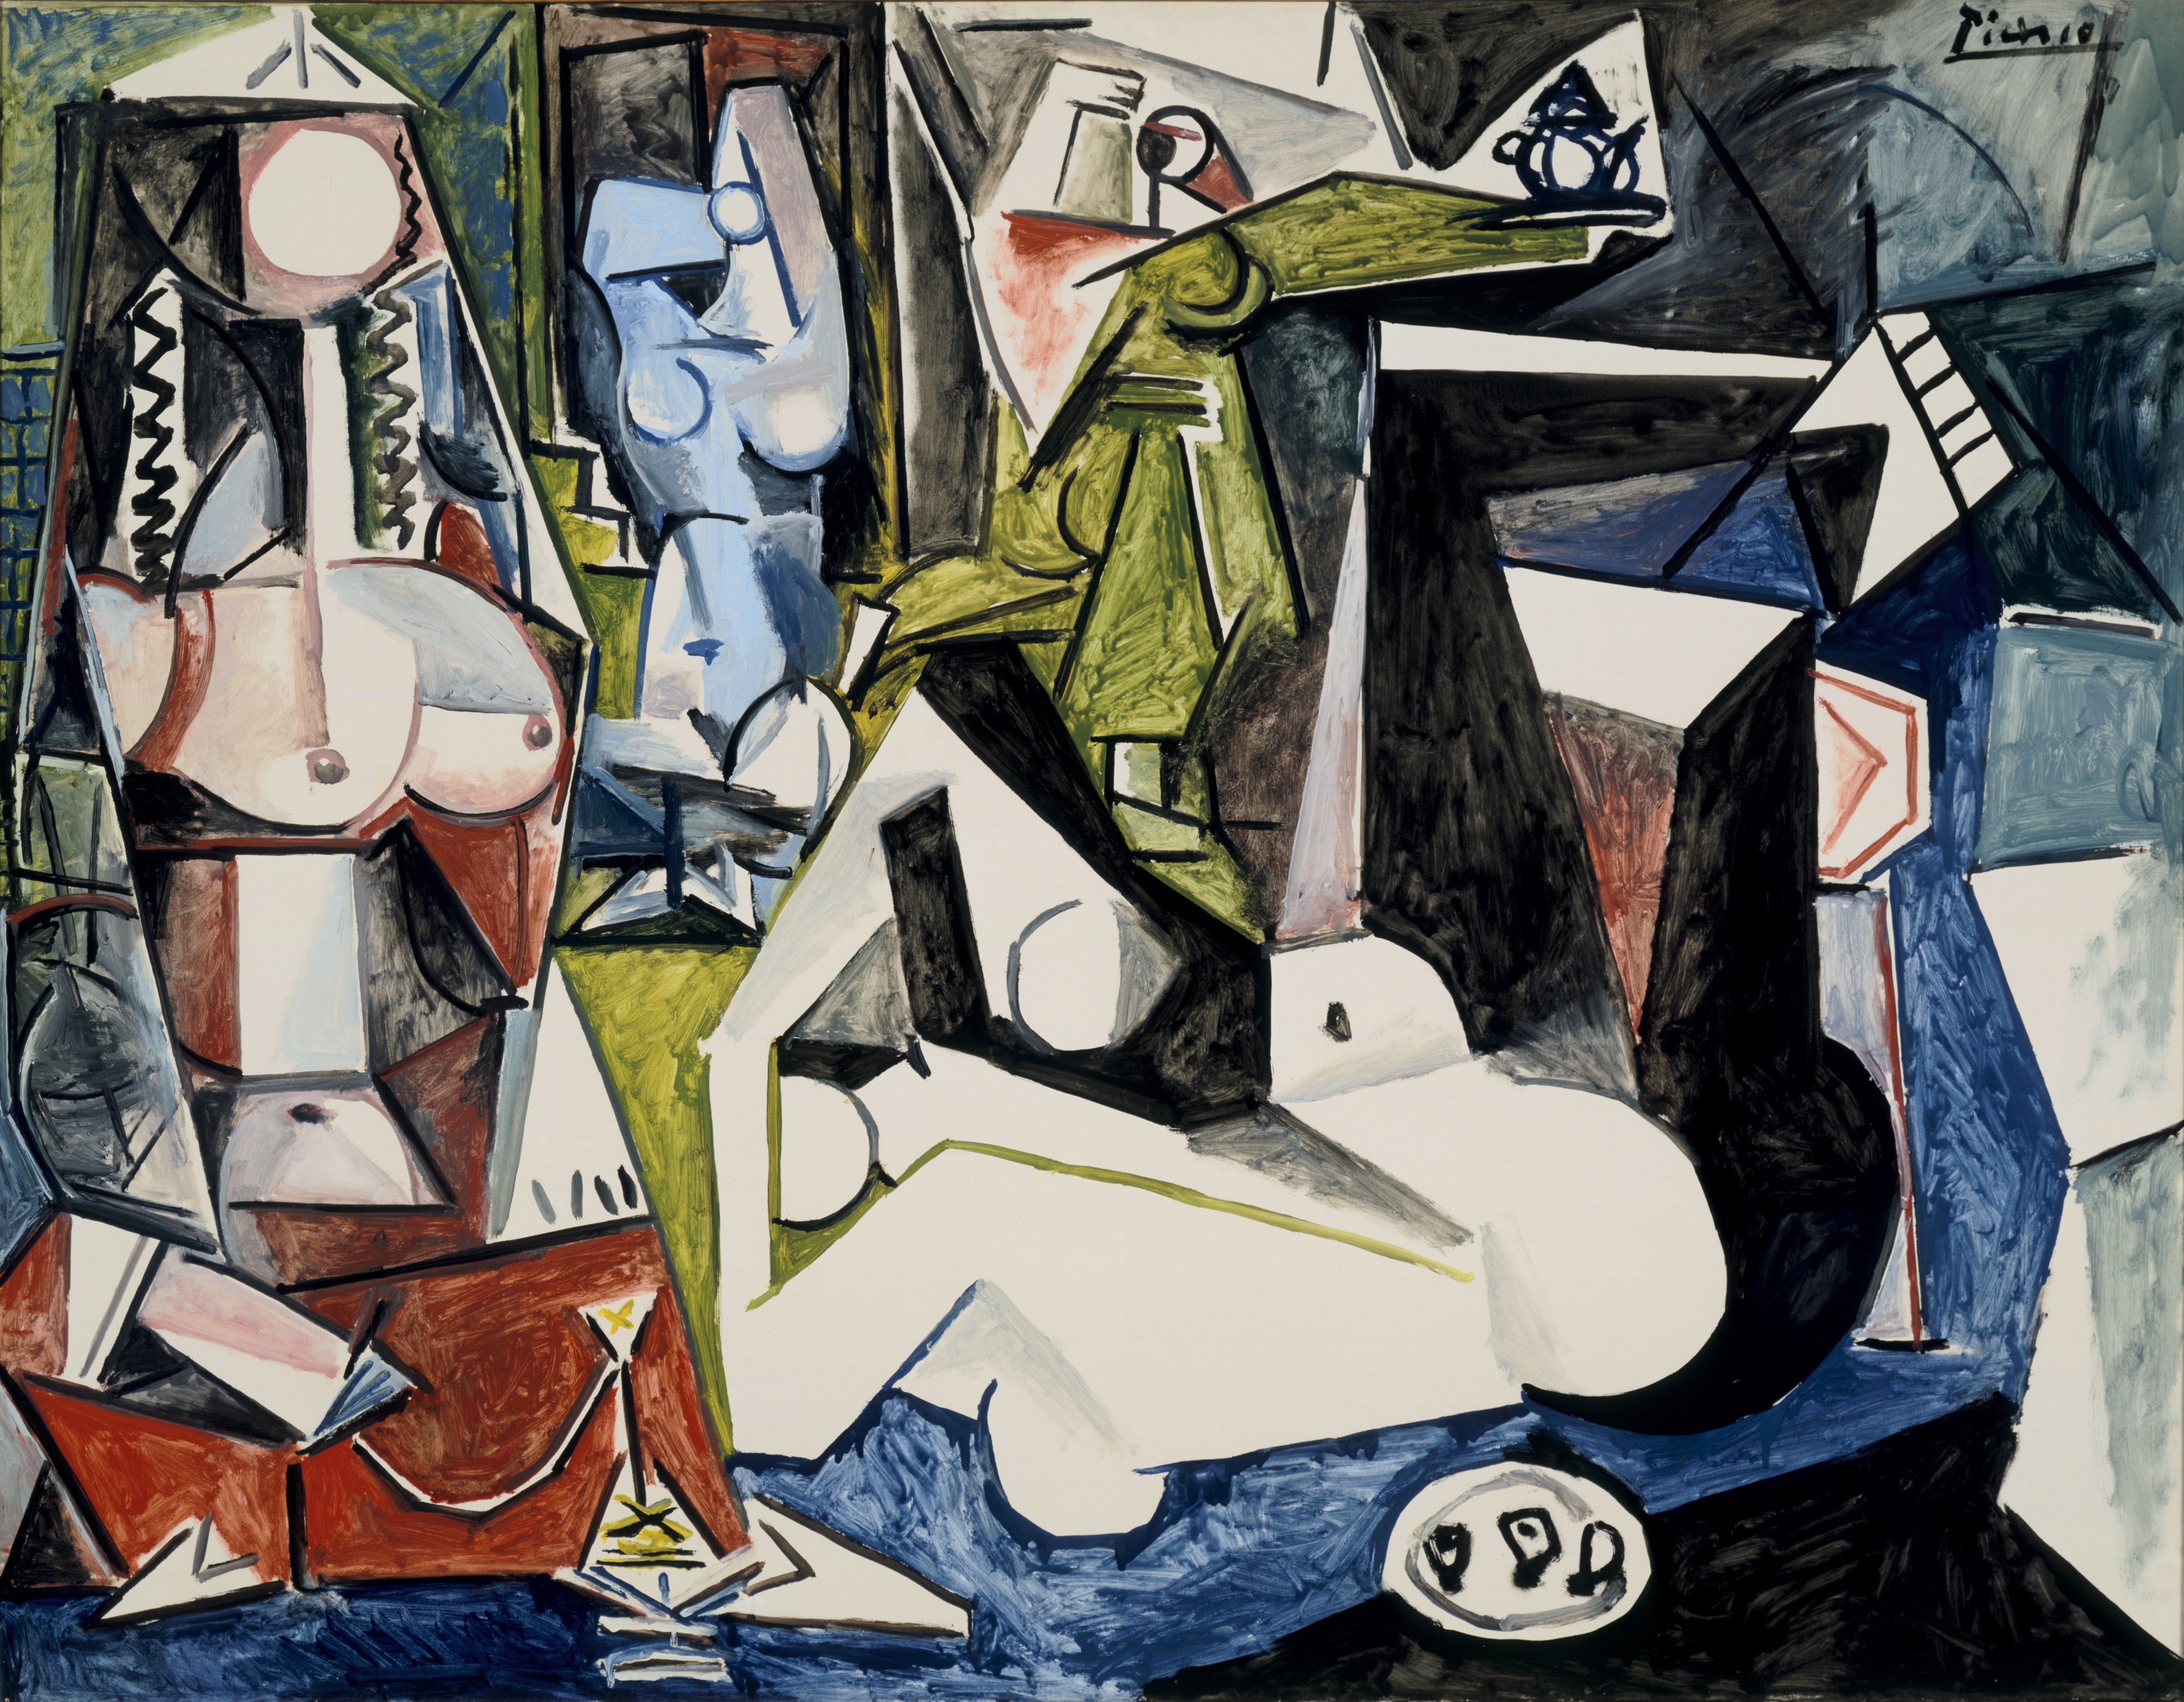 Picasso S Les Femmes D Alger Series 1954 55 And The